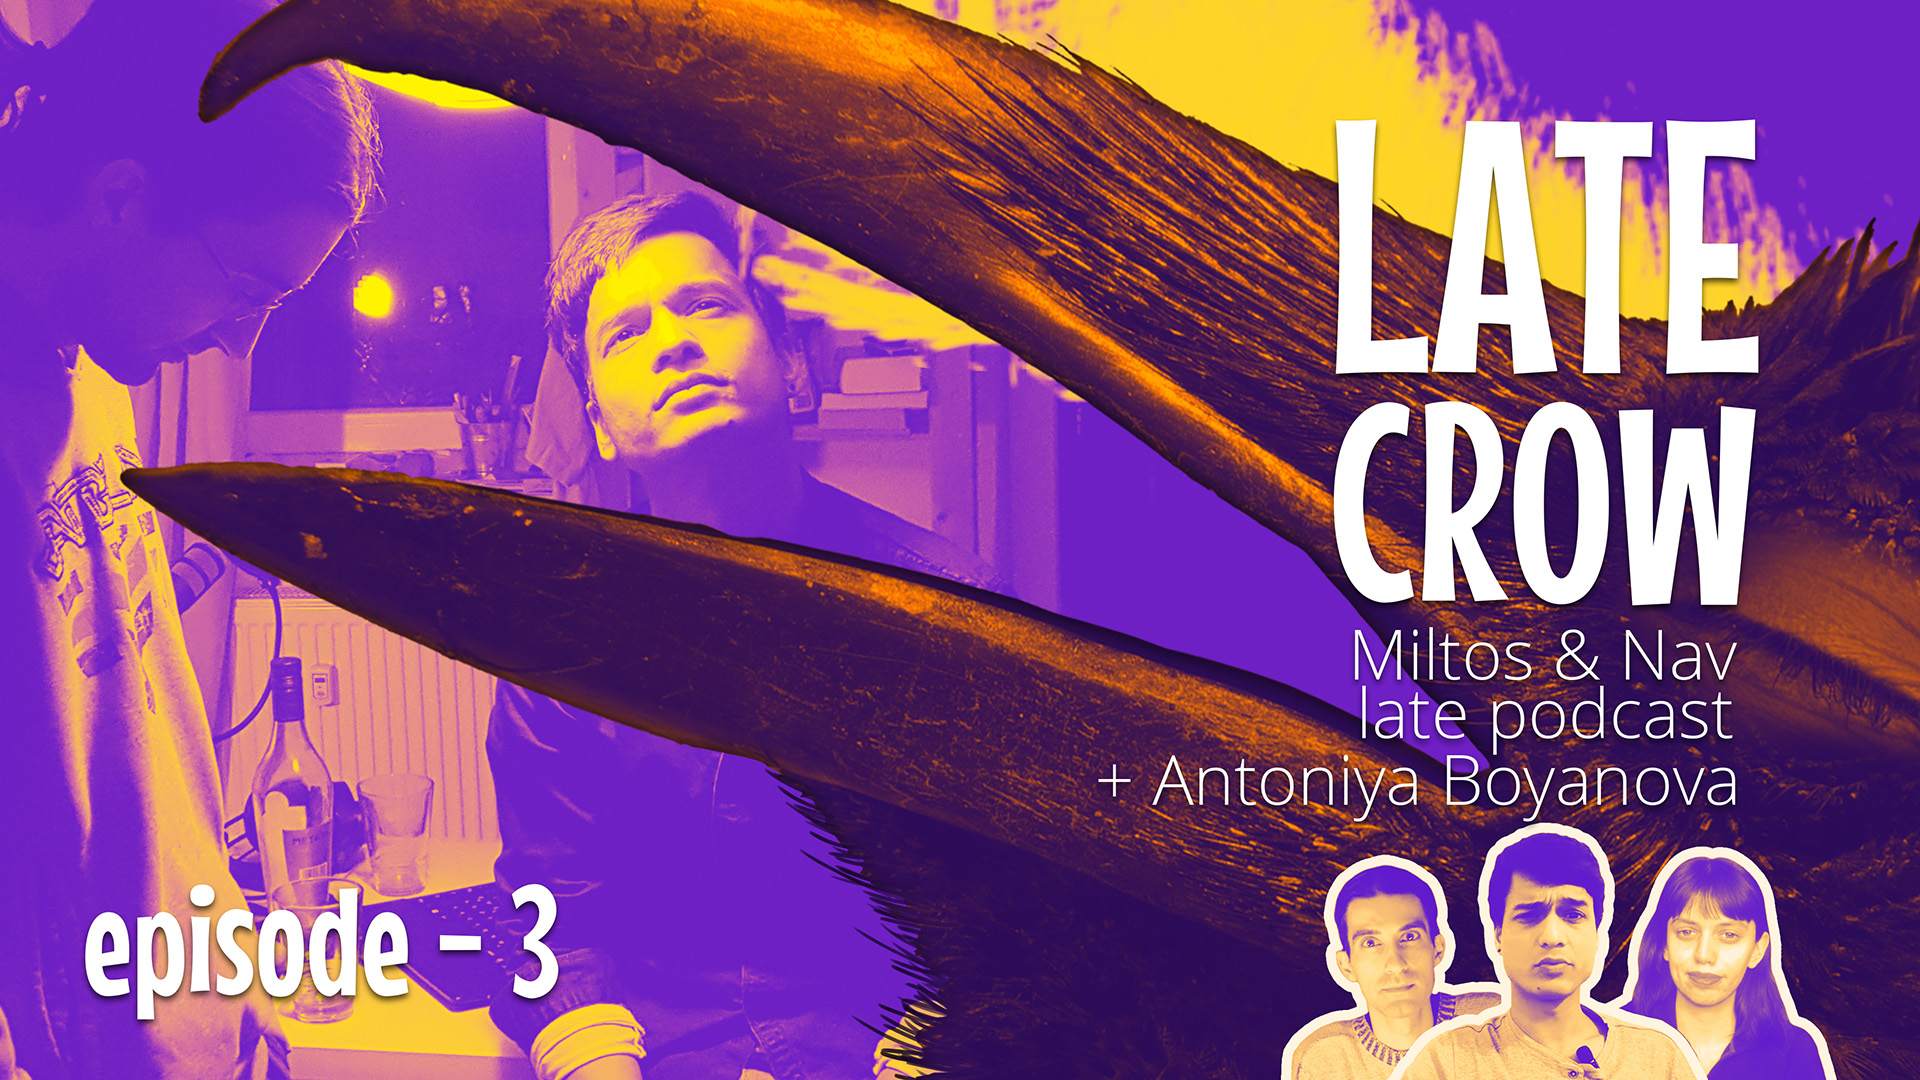 """Blame Corona"" Late Crow new episode"